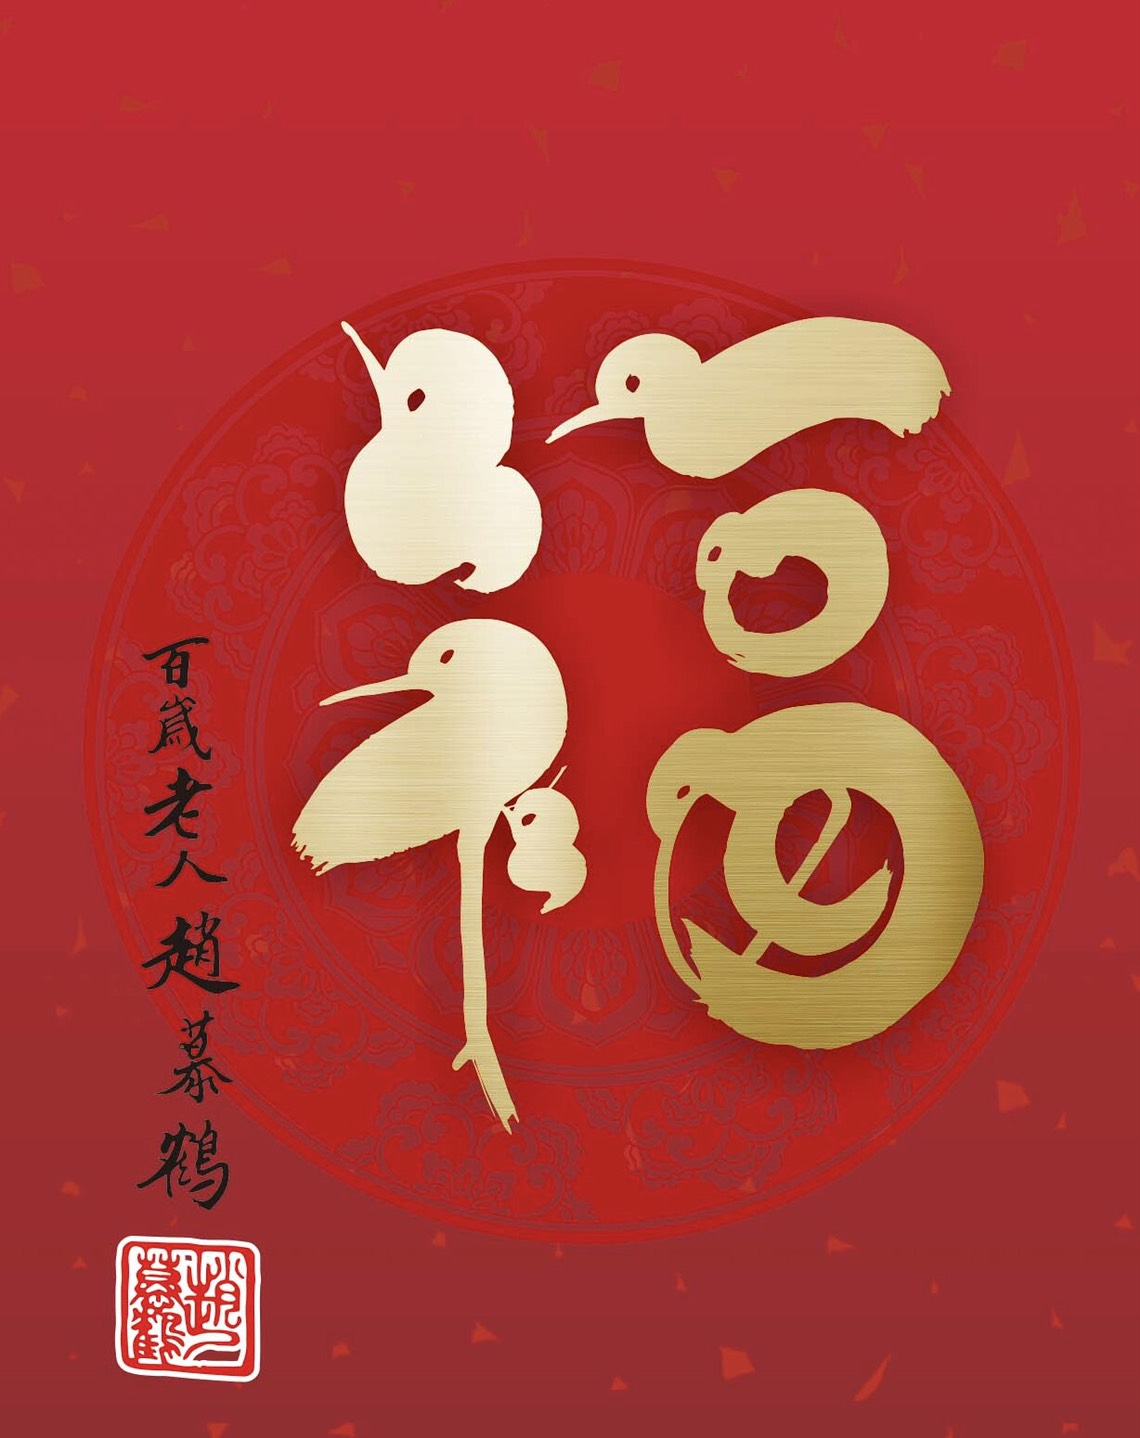 106-Year-Old Bird Worm Seal Script Calligrapher Shows Love Never Ends